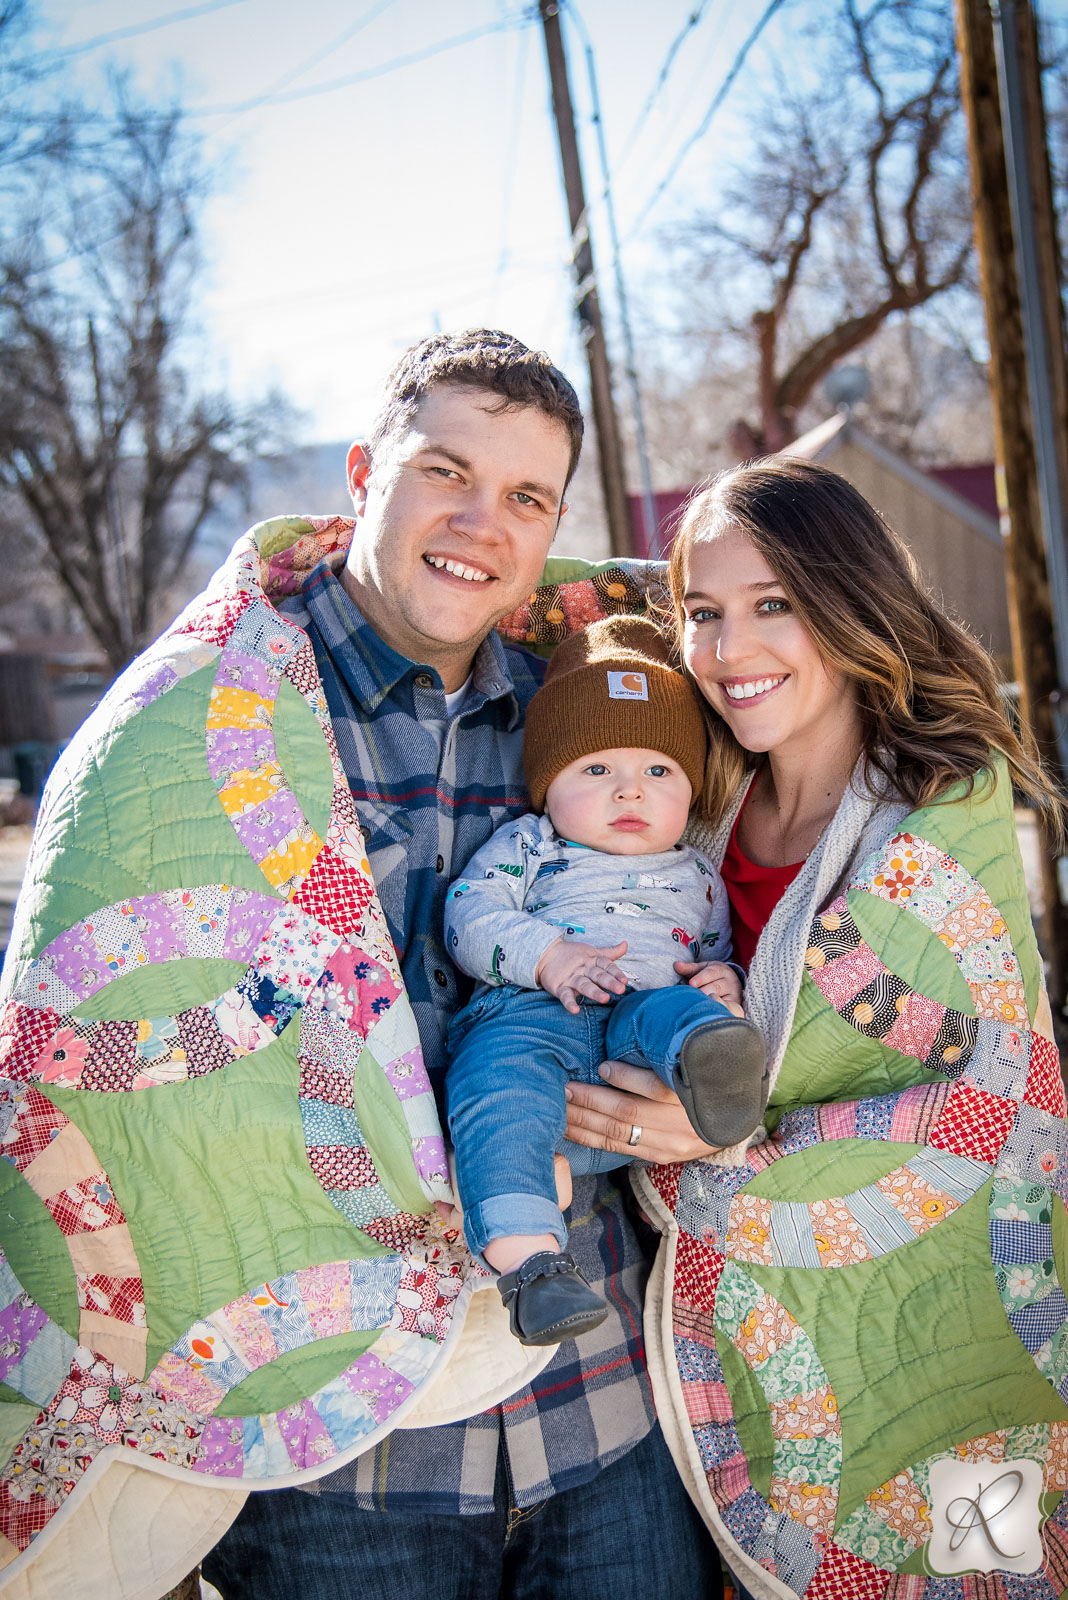 professional family portraits by Allison Ragsdale Photography in Durango, Colorado